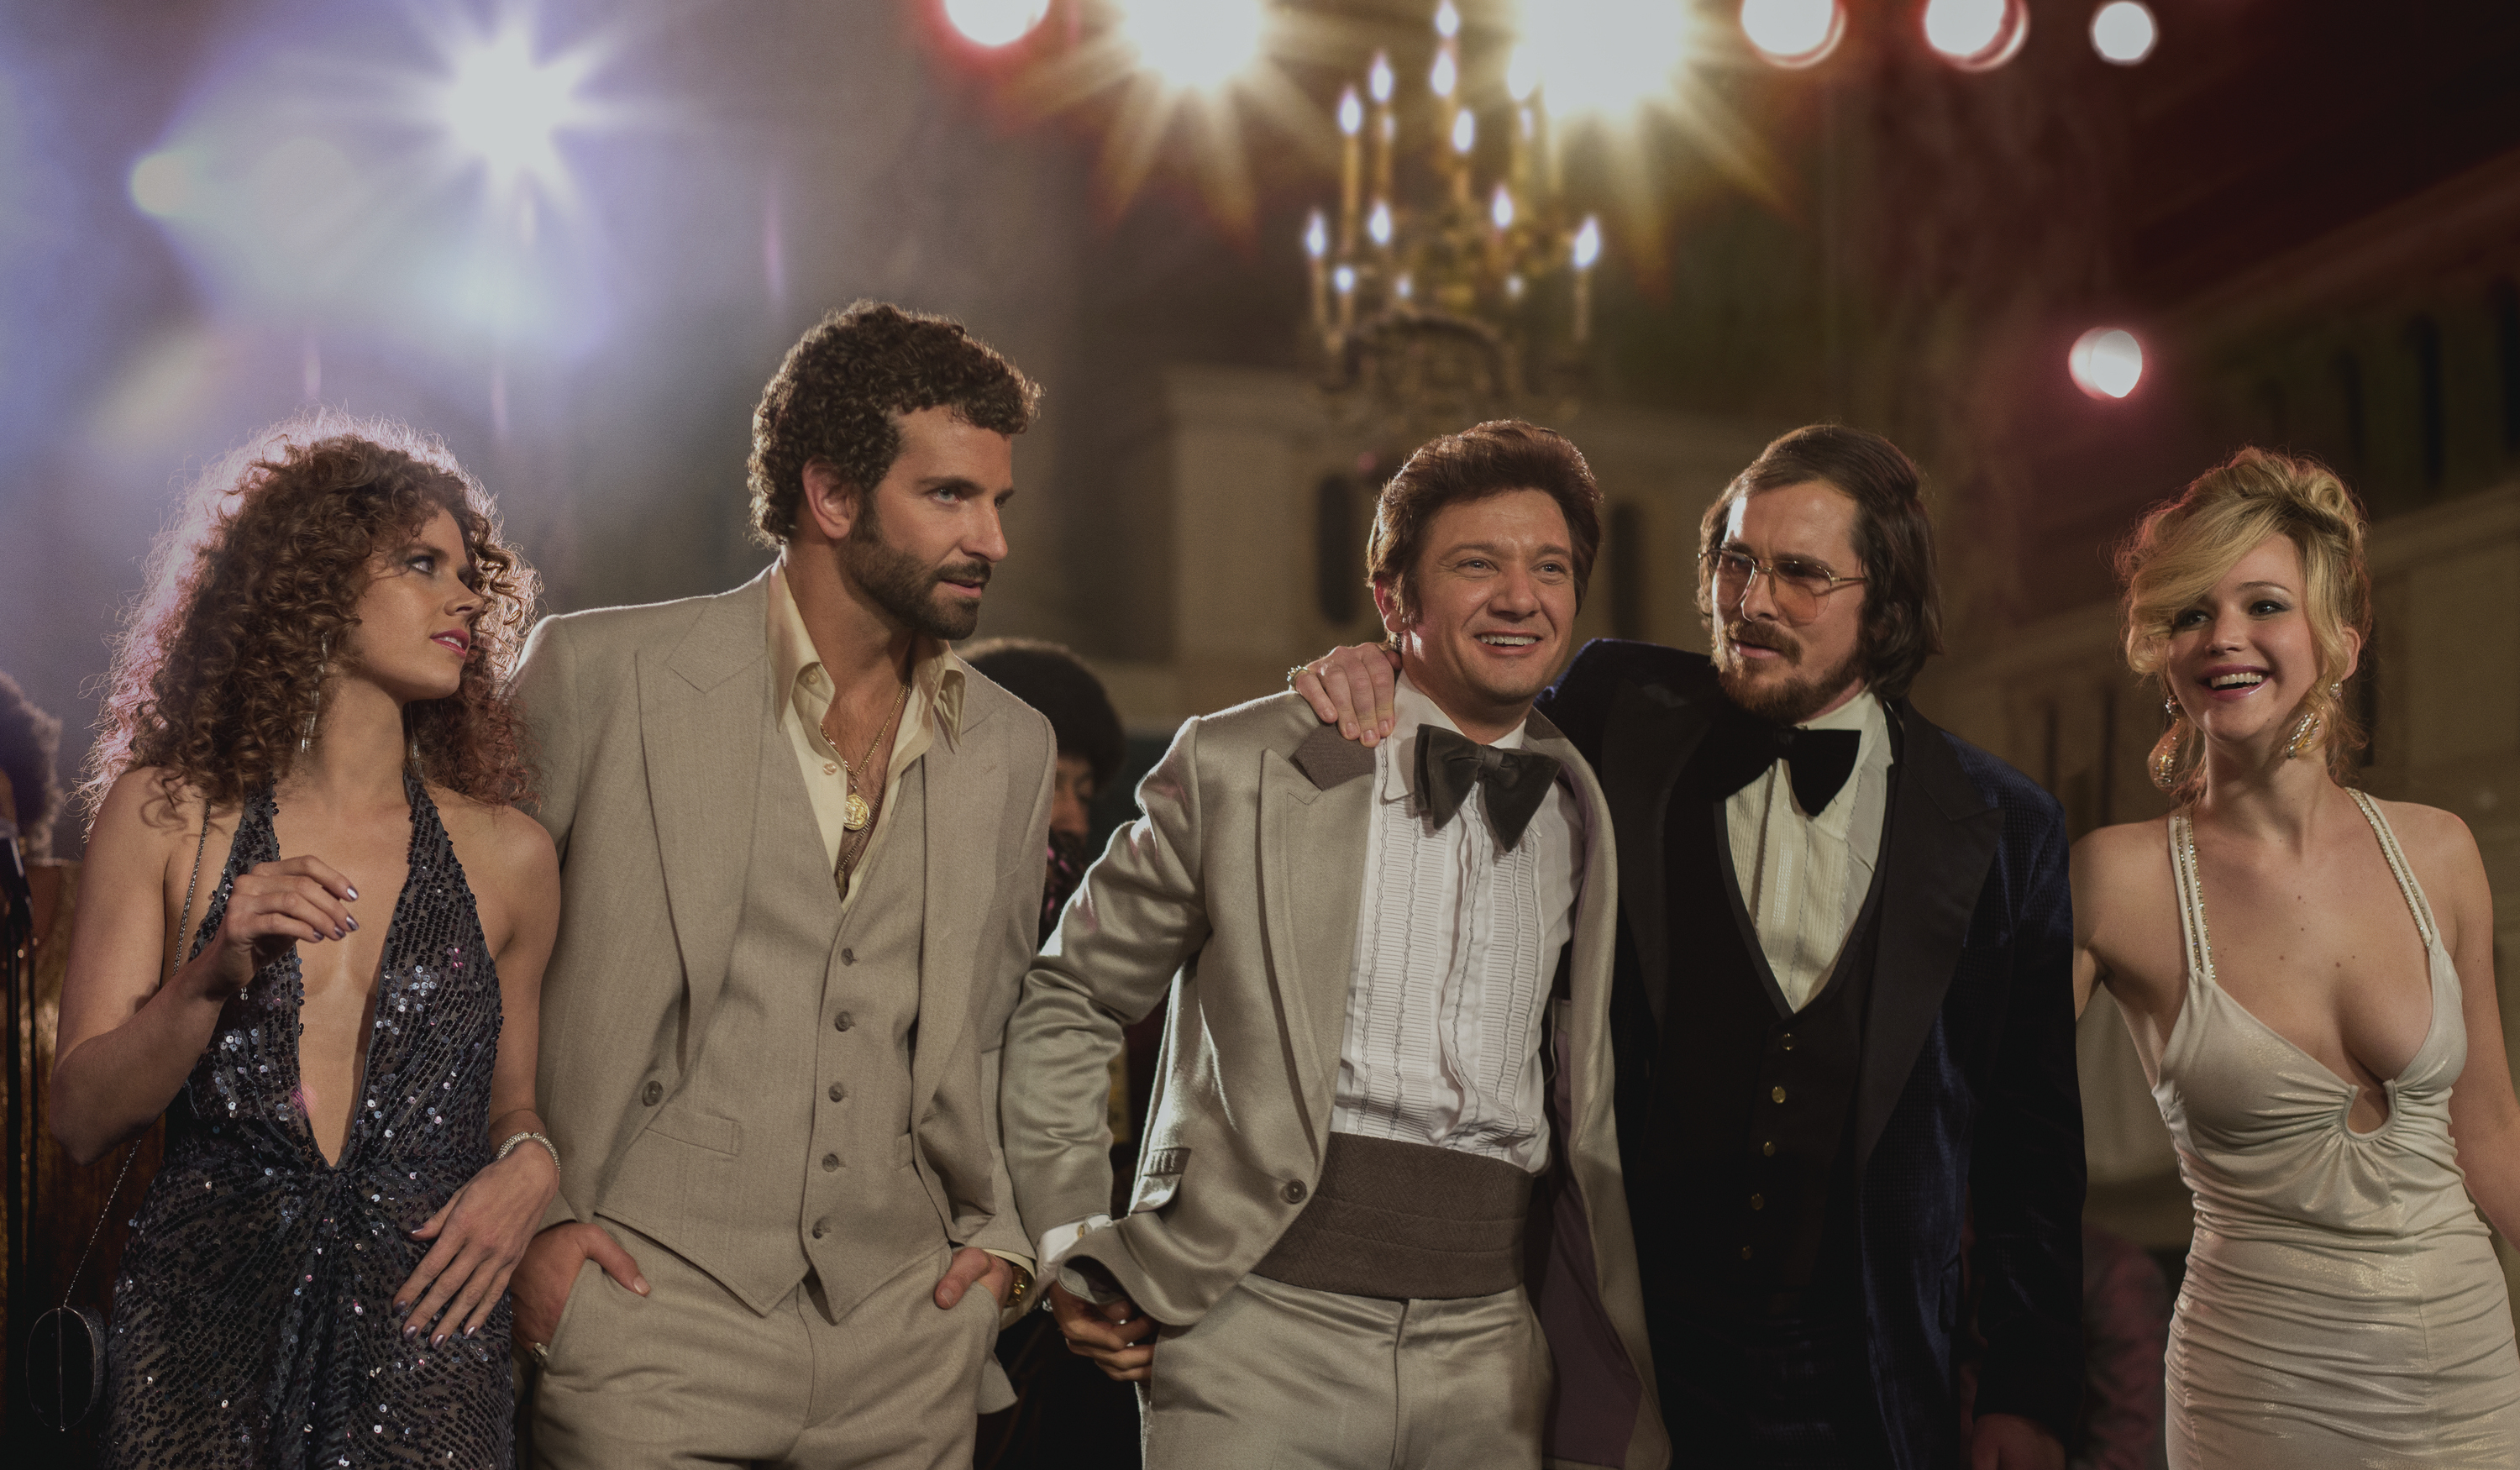 left to right; Amy Adams, as Sydney Prosser, Bradley Cooper, as Richie Dimaso , Jeremy Renner, as Mayor Carmine Polito, Christian Bale as Irving Rosenfeld, and Jennifer Lawrence as Rosalyn Rosenfeld, in a scene from  American Hustle.